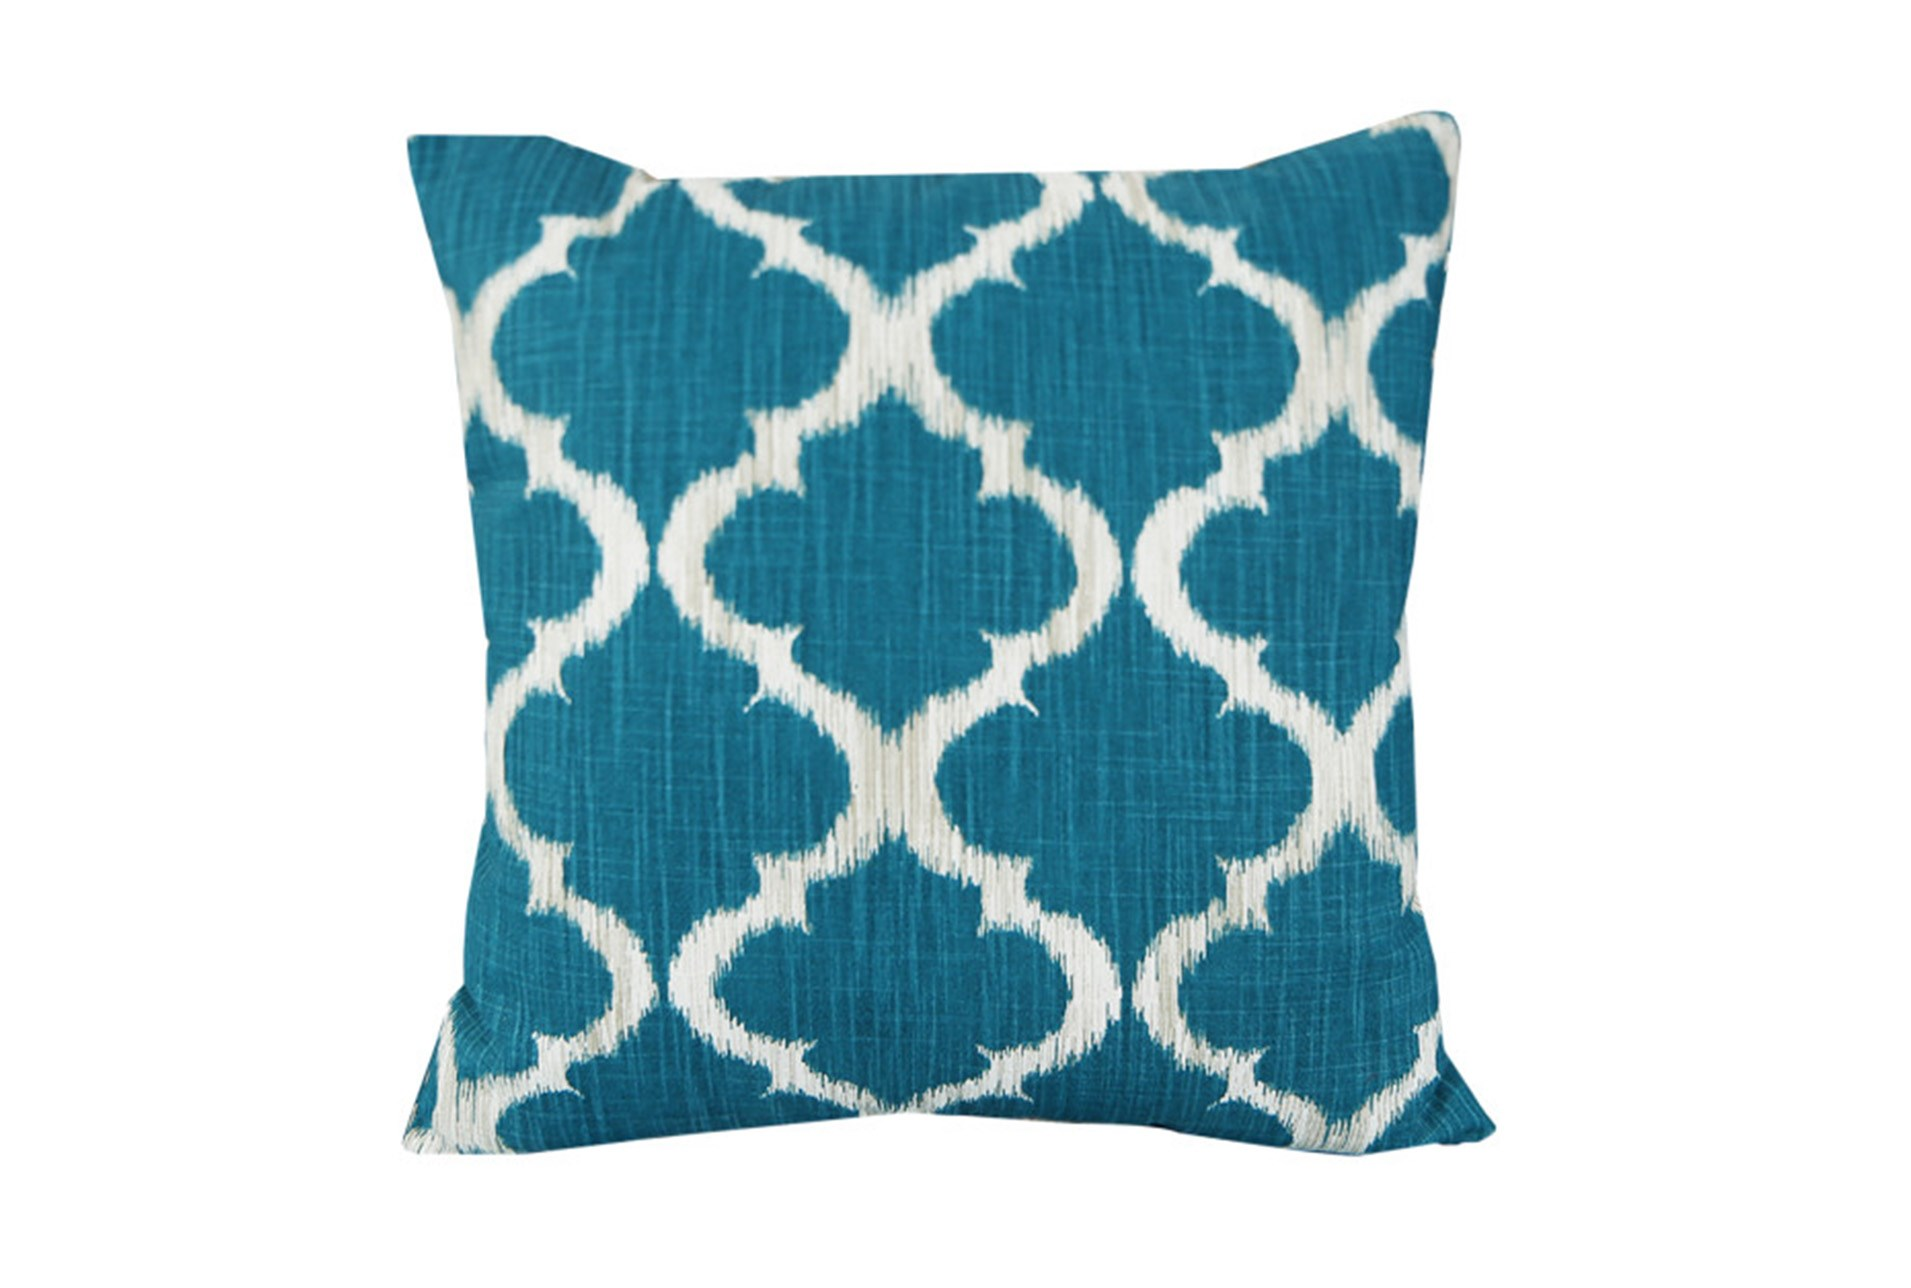 Decorative Pillows Living Spaces : Accent Pillow-Clover Teal 18X18 Living Spaces